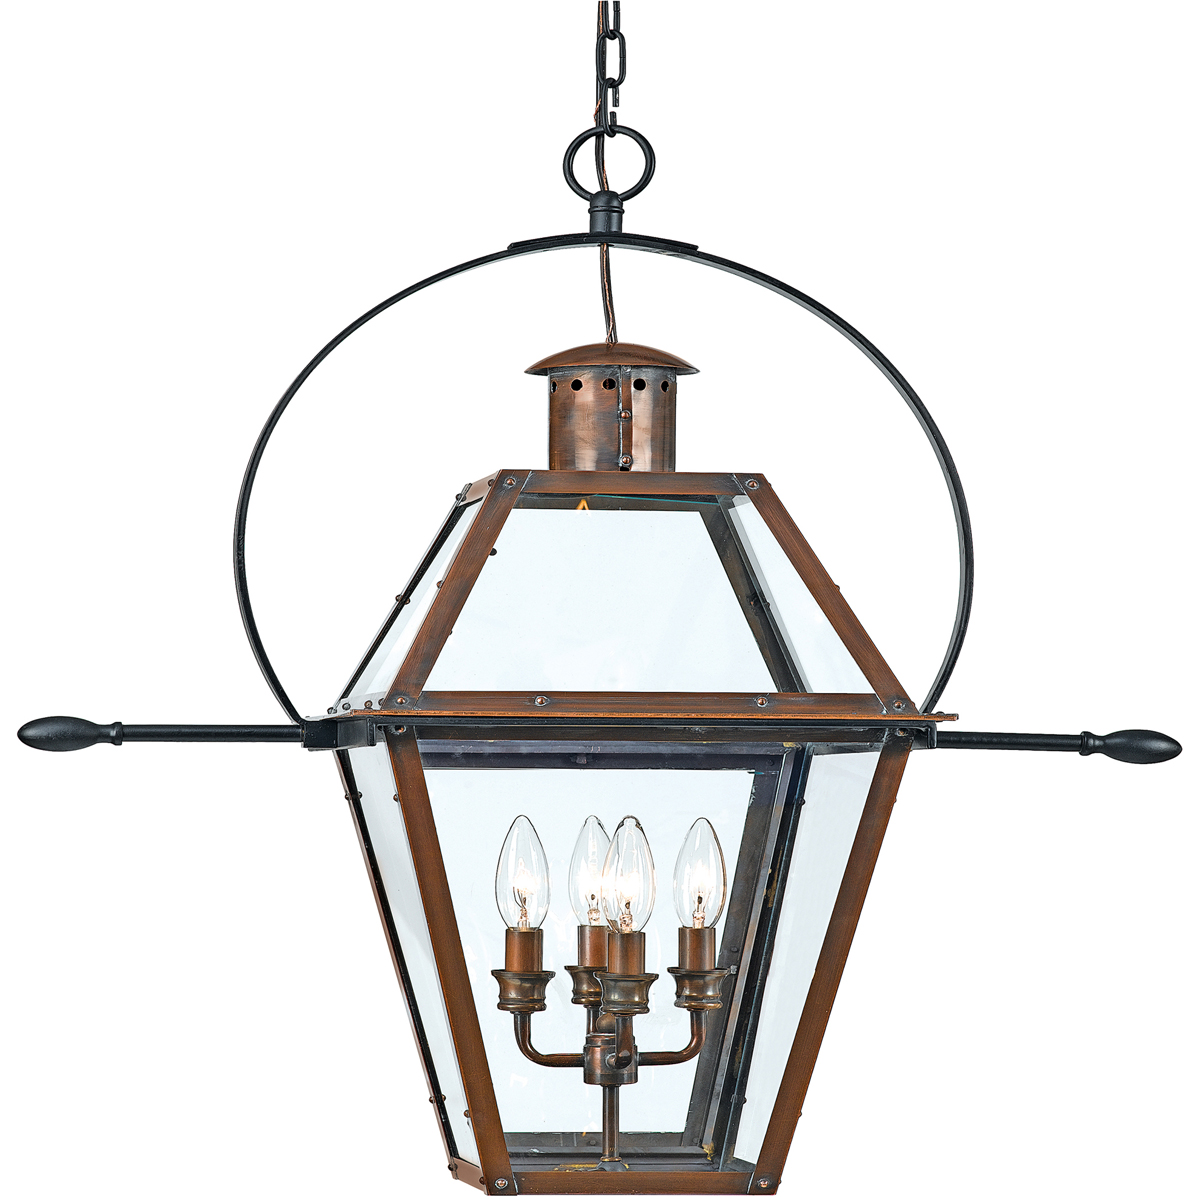 Quoizel Lighting (RO1914AC) Rue De Royal Outdoor Hanging Lantern in Patinaed Solid Copper with Antique Highlights